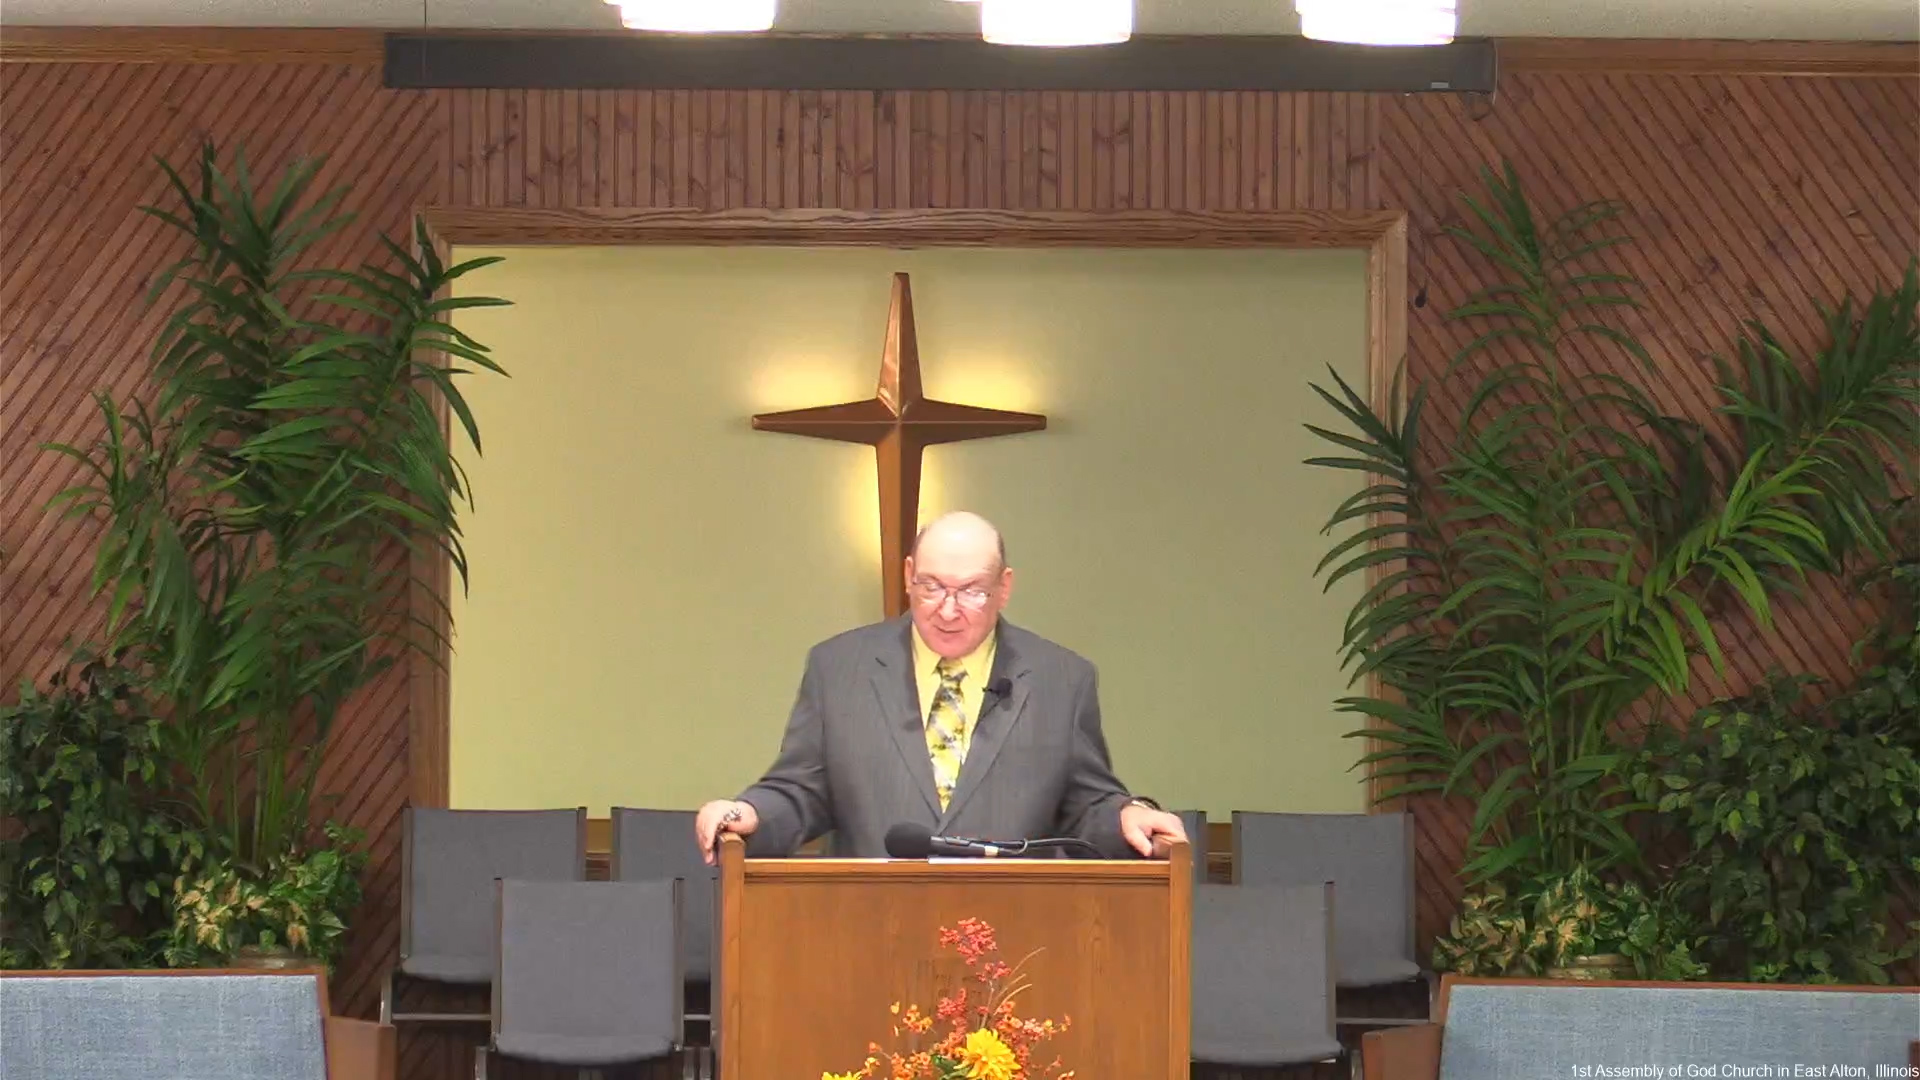 First Assembly of God in East Alton